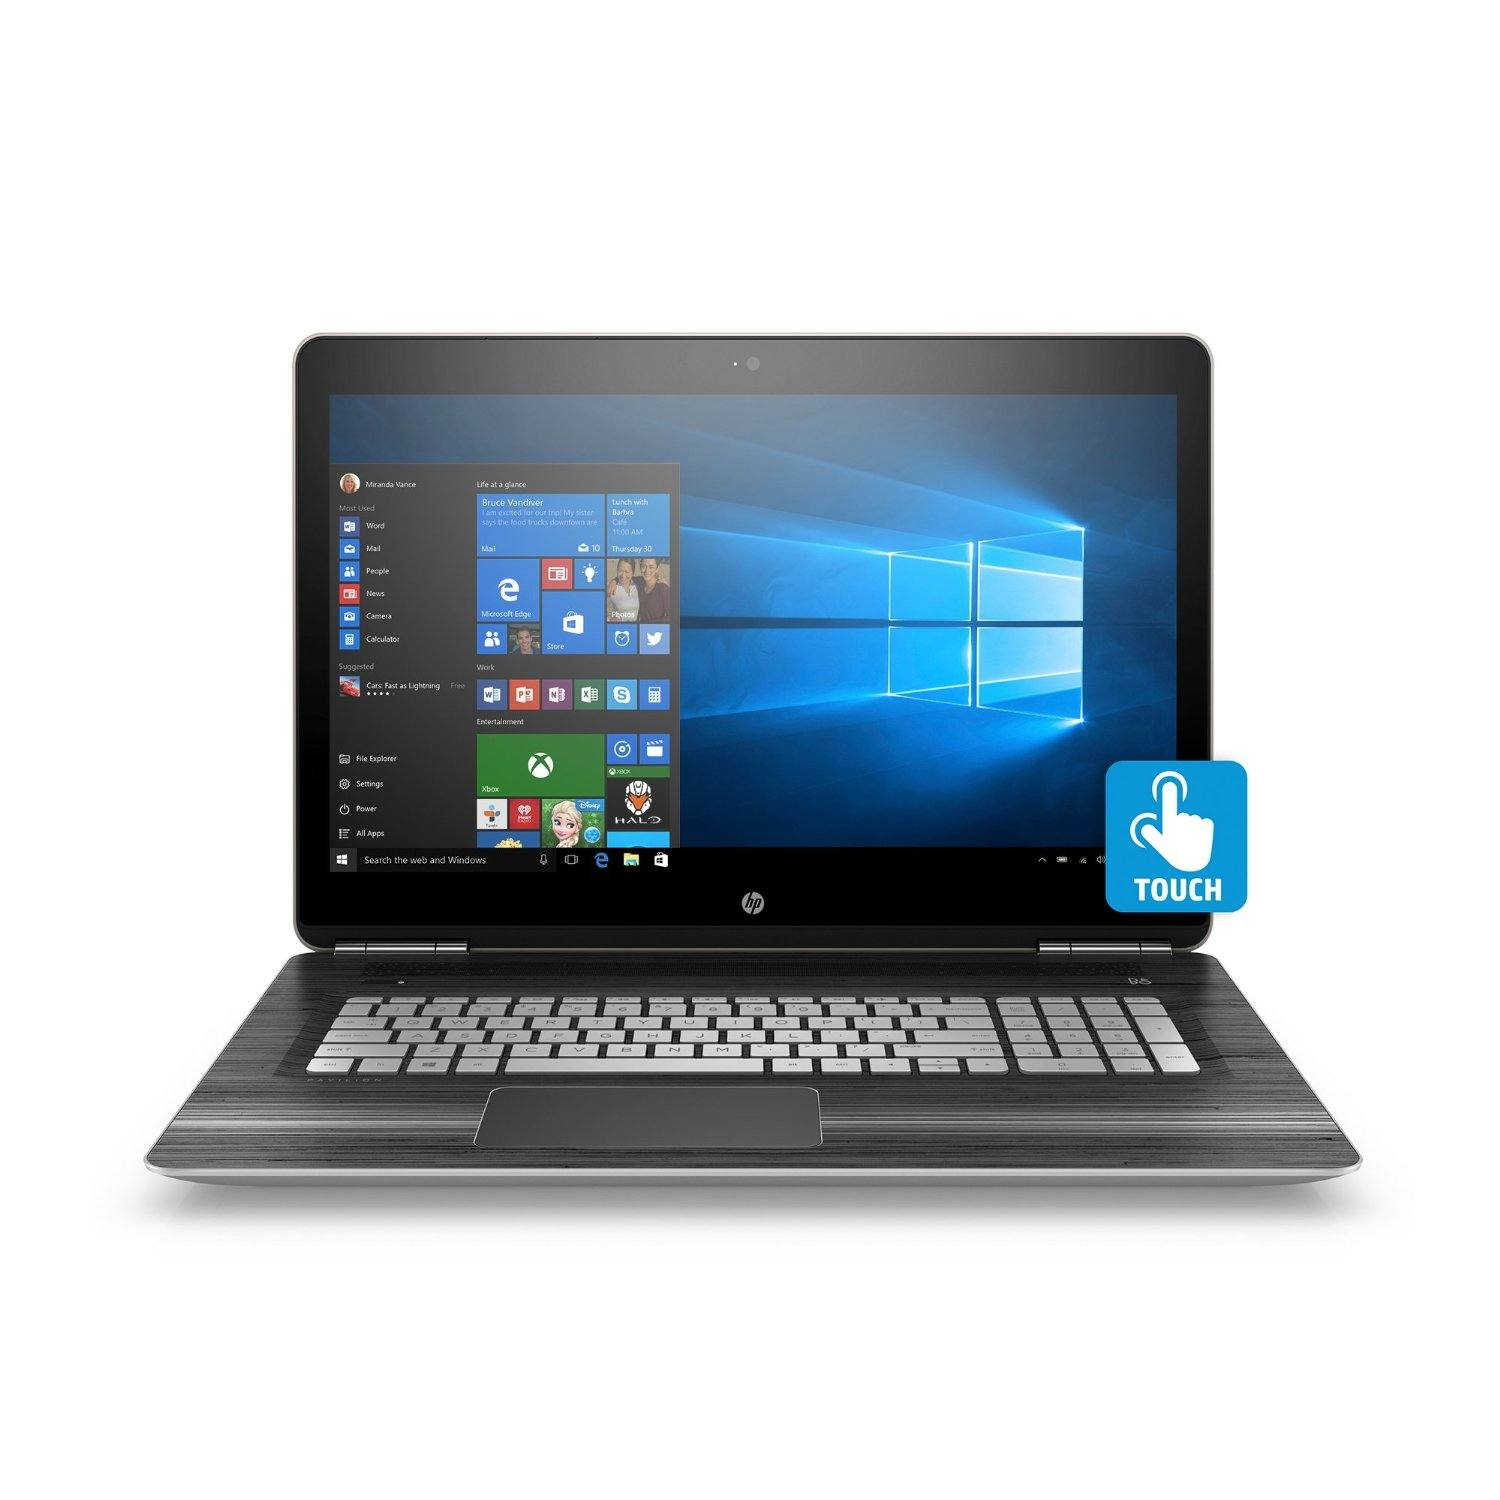 COLLEGE STUDENTS: Is a mini laptop/ netbook suitable for college?